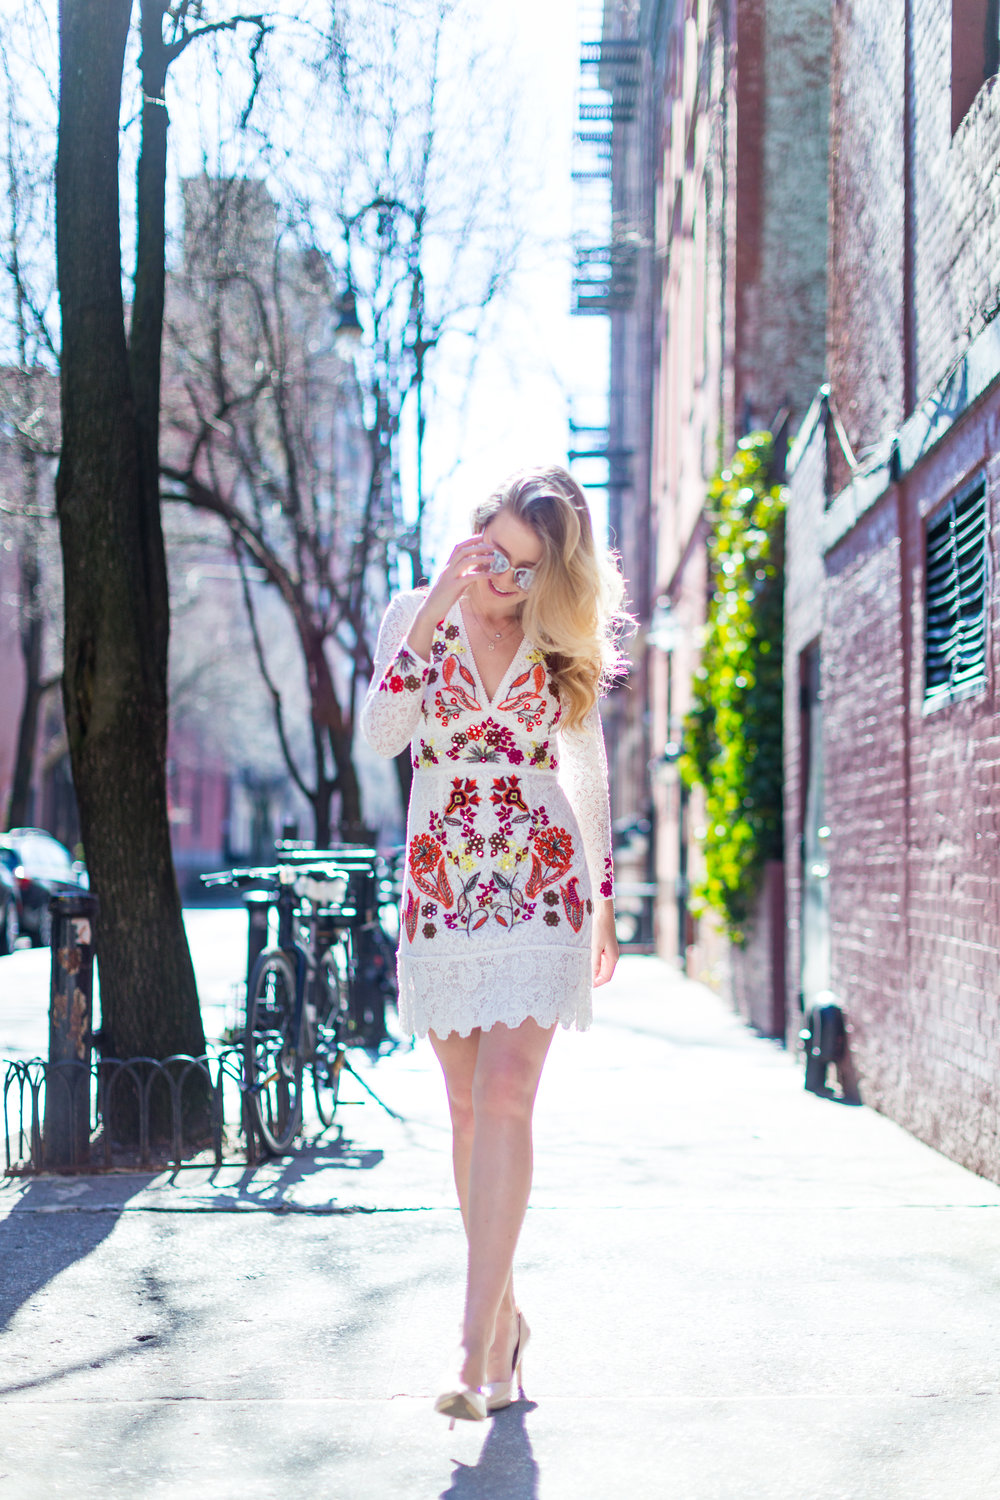 West Village NYC Embroidered Lace Outfit-12.jpg